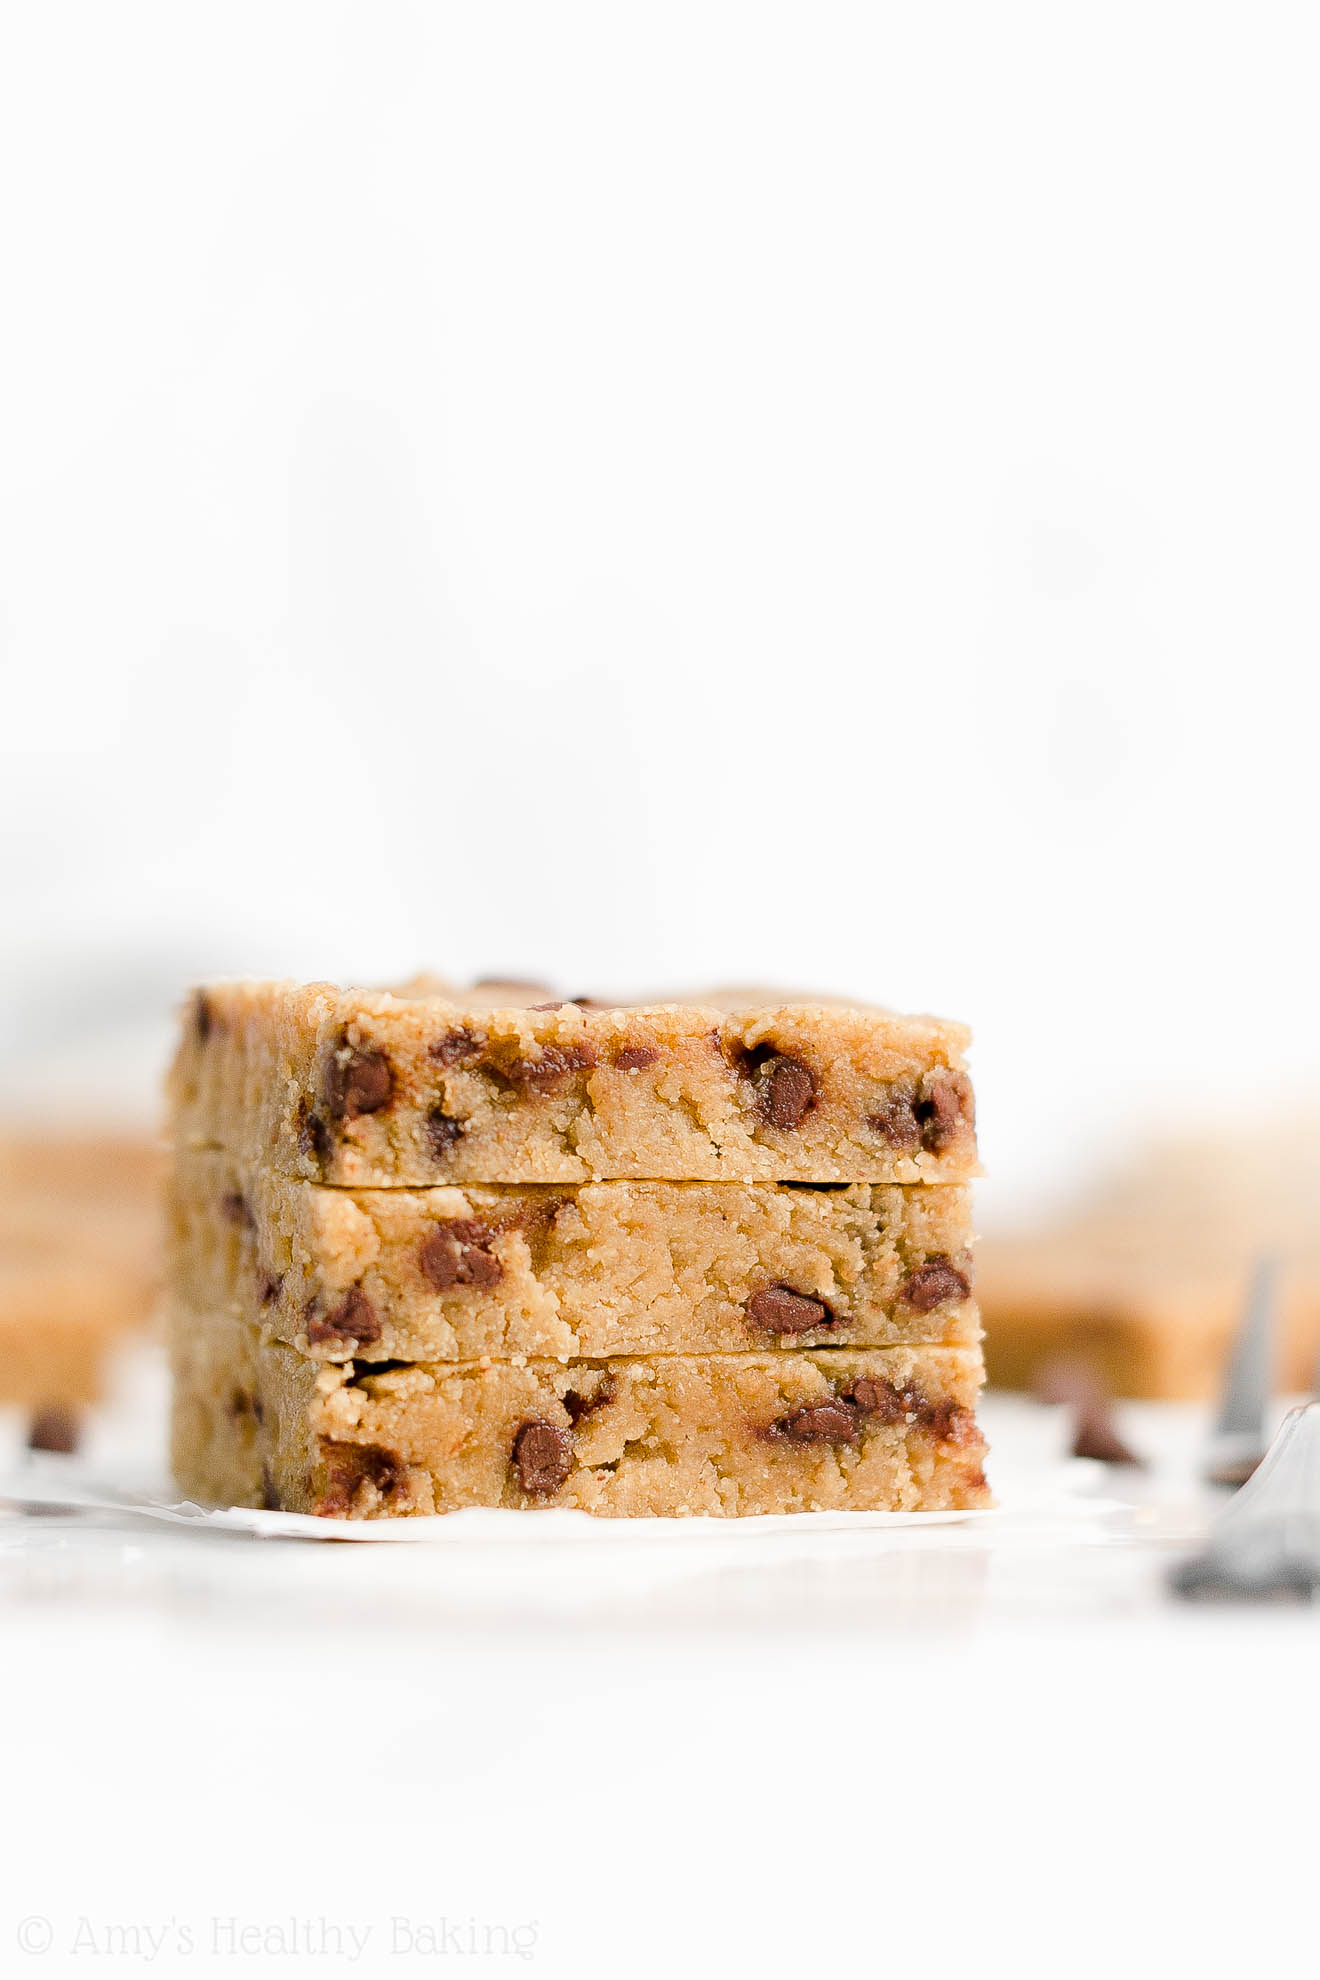 Healthy Eggless Low Sugar Flourless Chocolate Chip Peanut Butter Cookie Bars